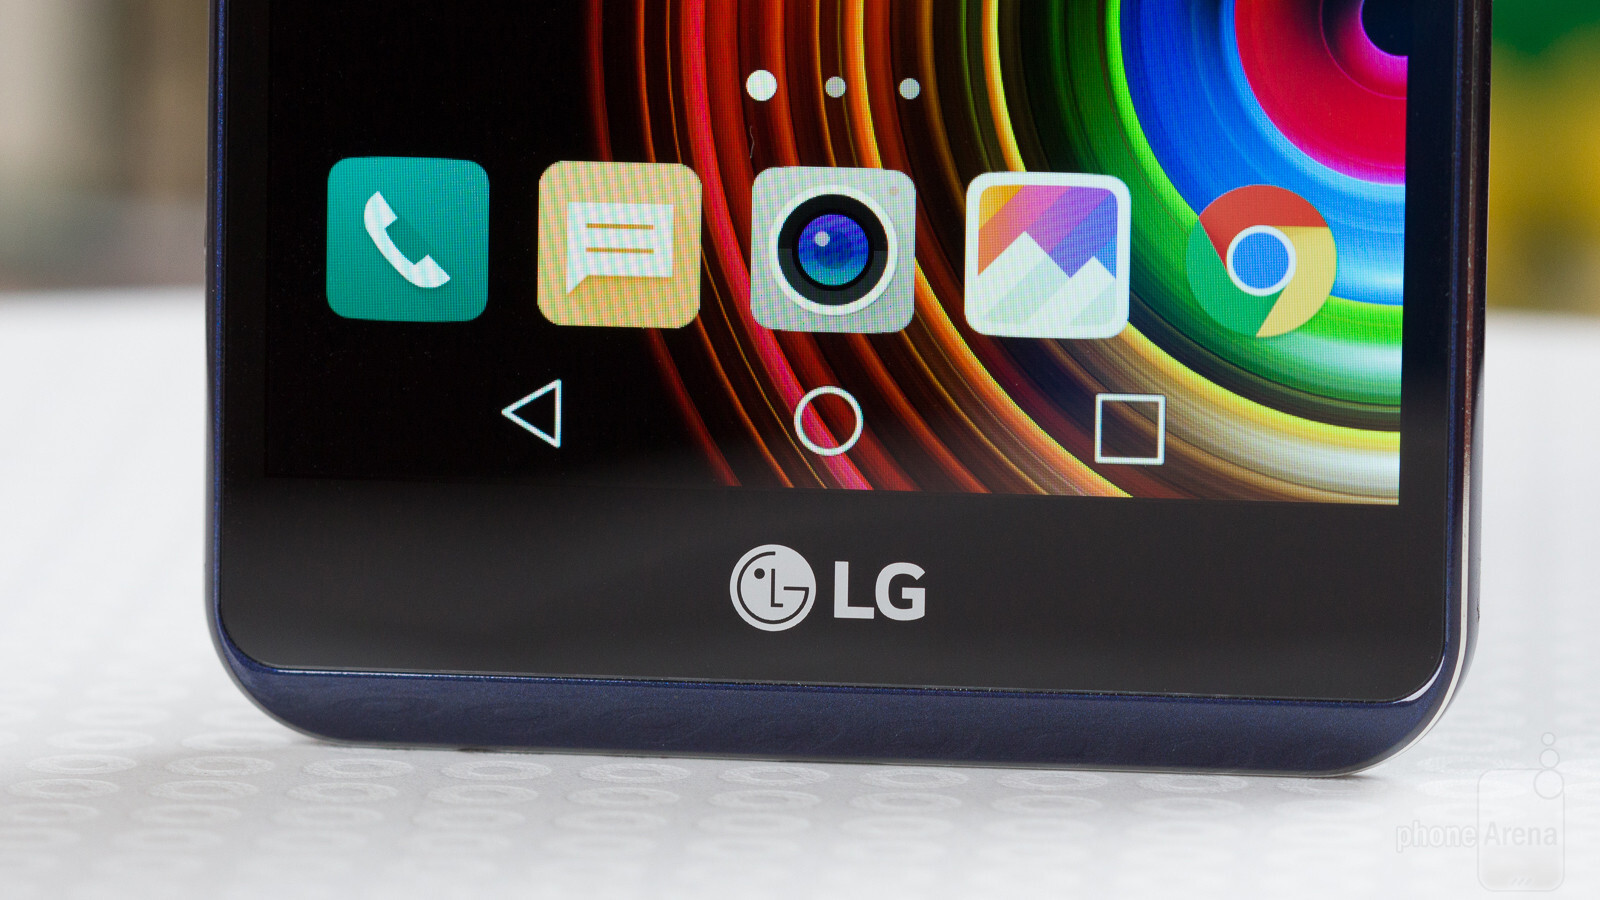 LG X Power Review - Interface and Functionality - PhoneArena